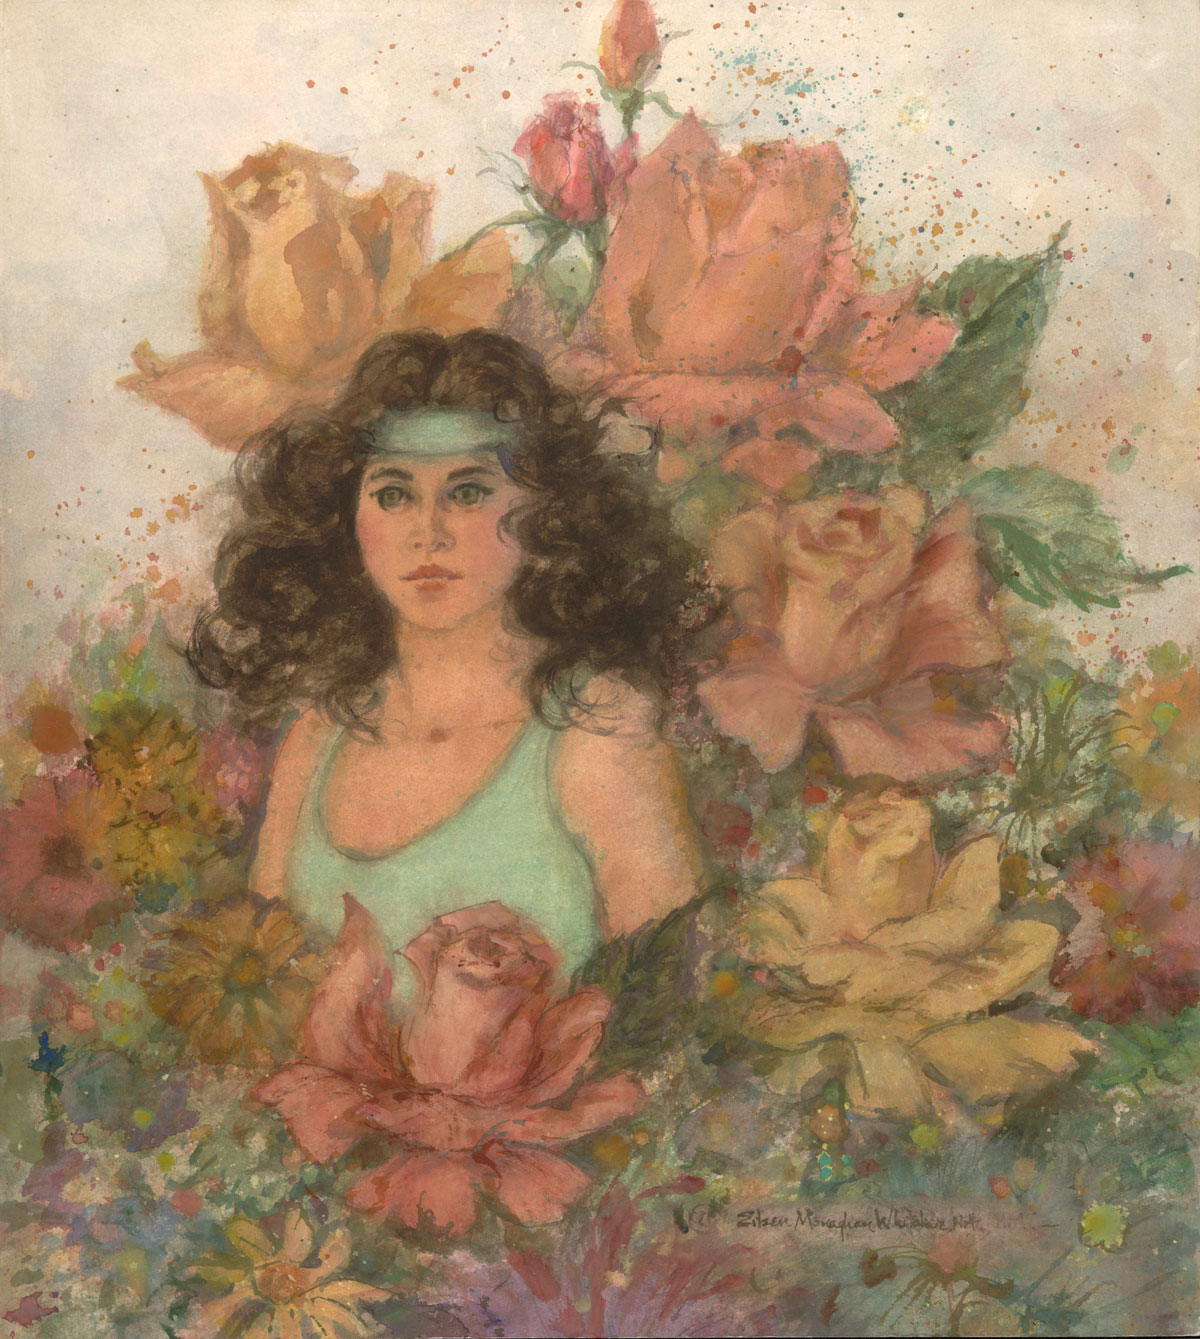 """The Name is Rose"" 1986 © Eileen Monaghan Whitaker N.A. 24.5x22 inches Watercolor"